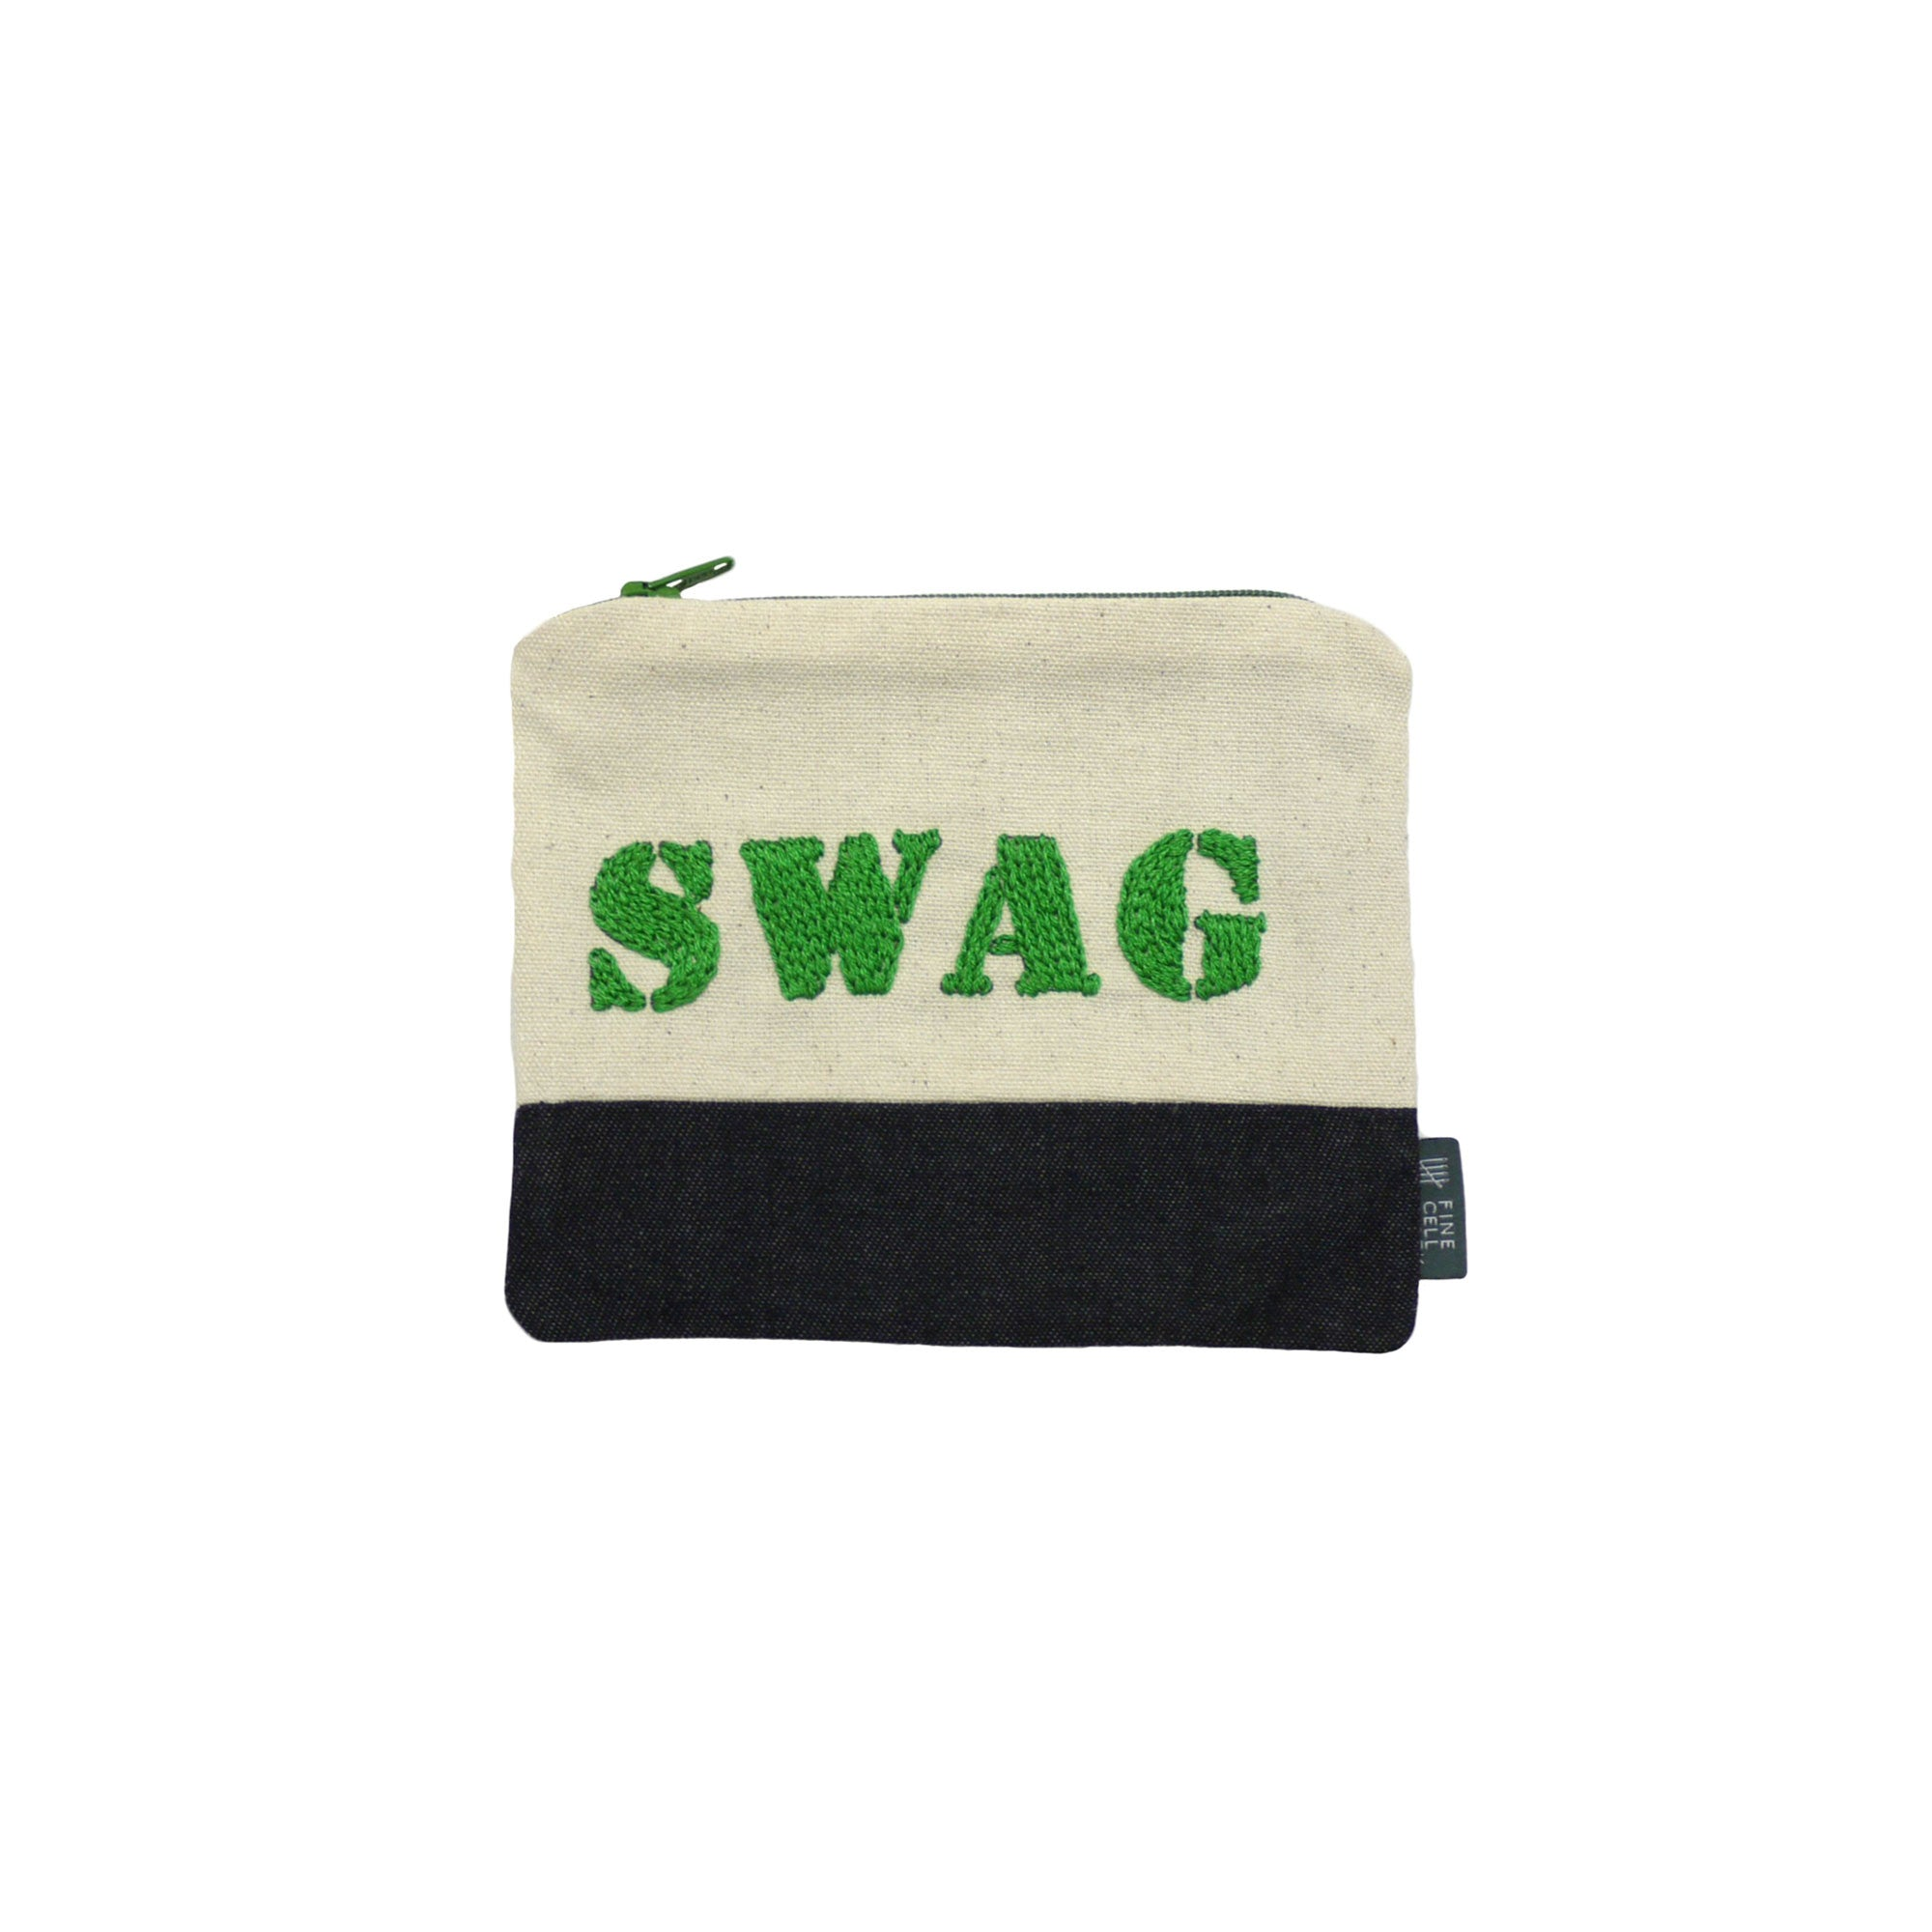 Swag Embroidered Purse Green